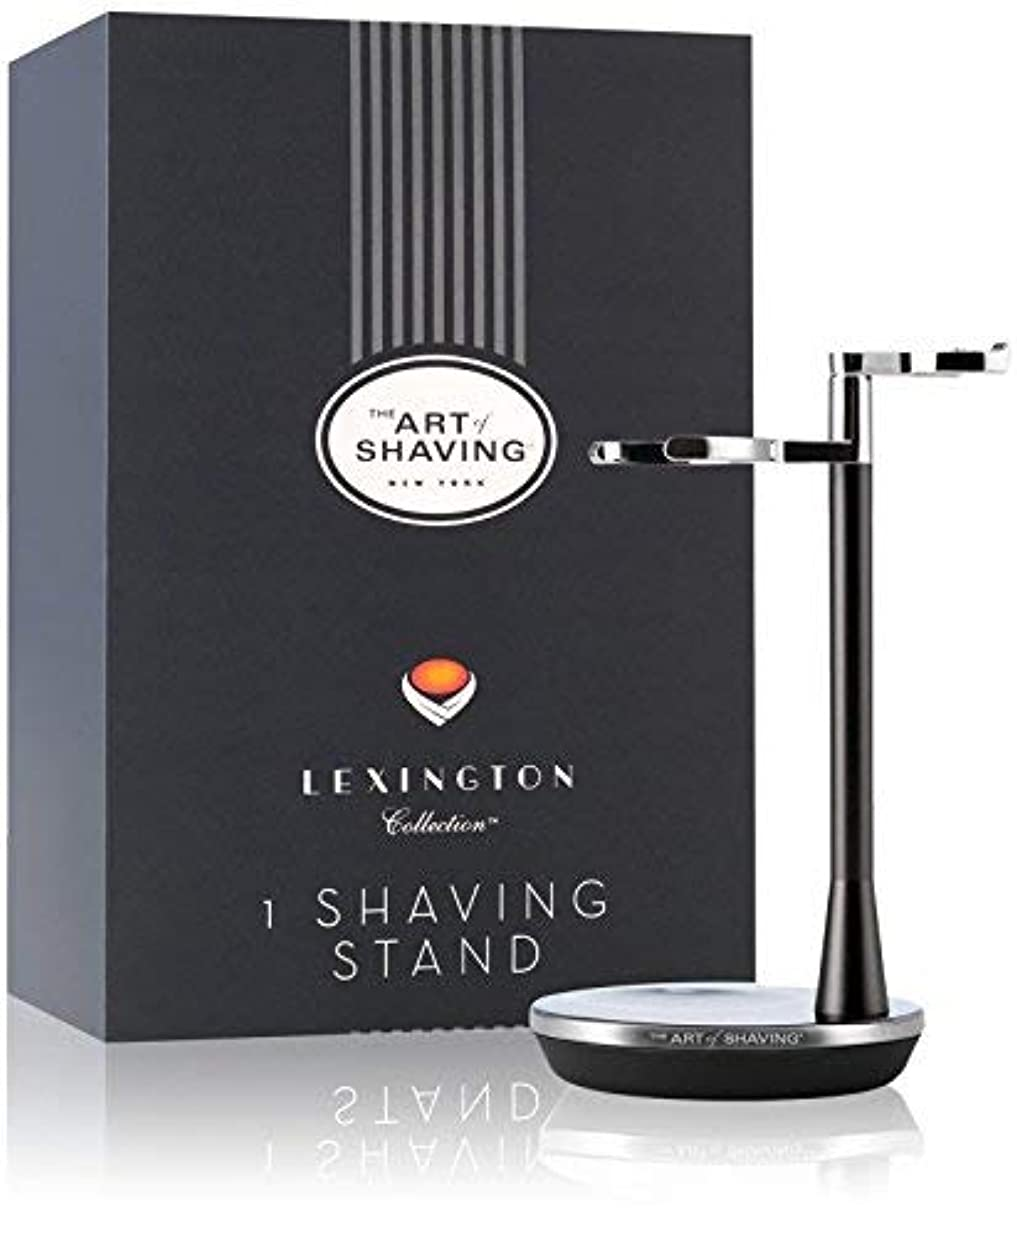 甘くする郵便ゆりThe Art of Shaving Lexington Collection Stand [並行輸入品]